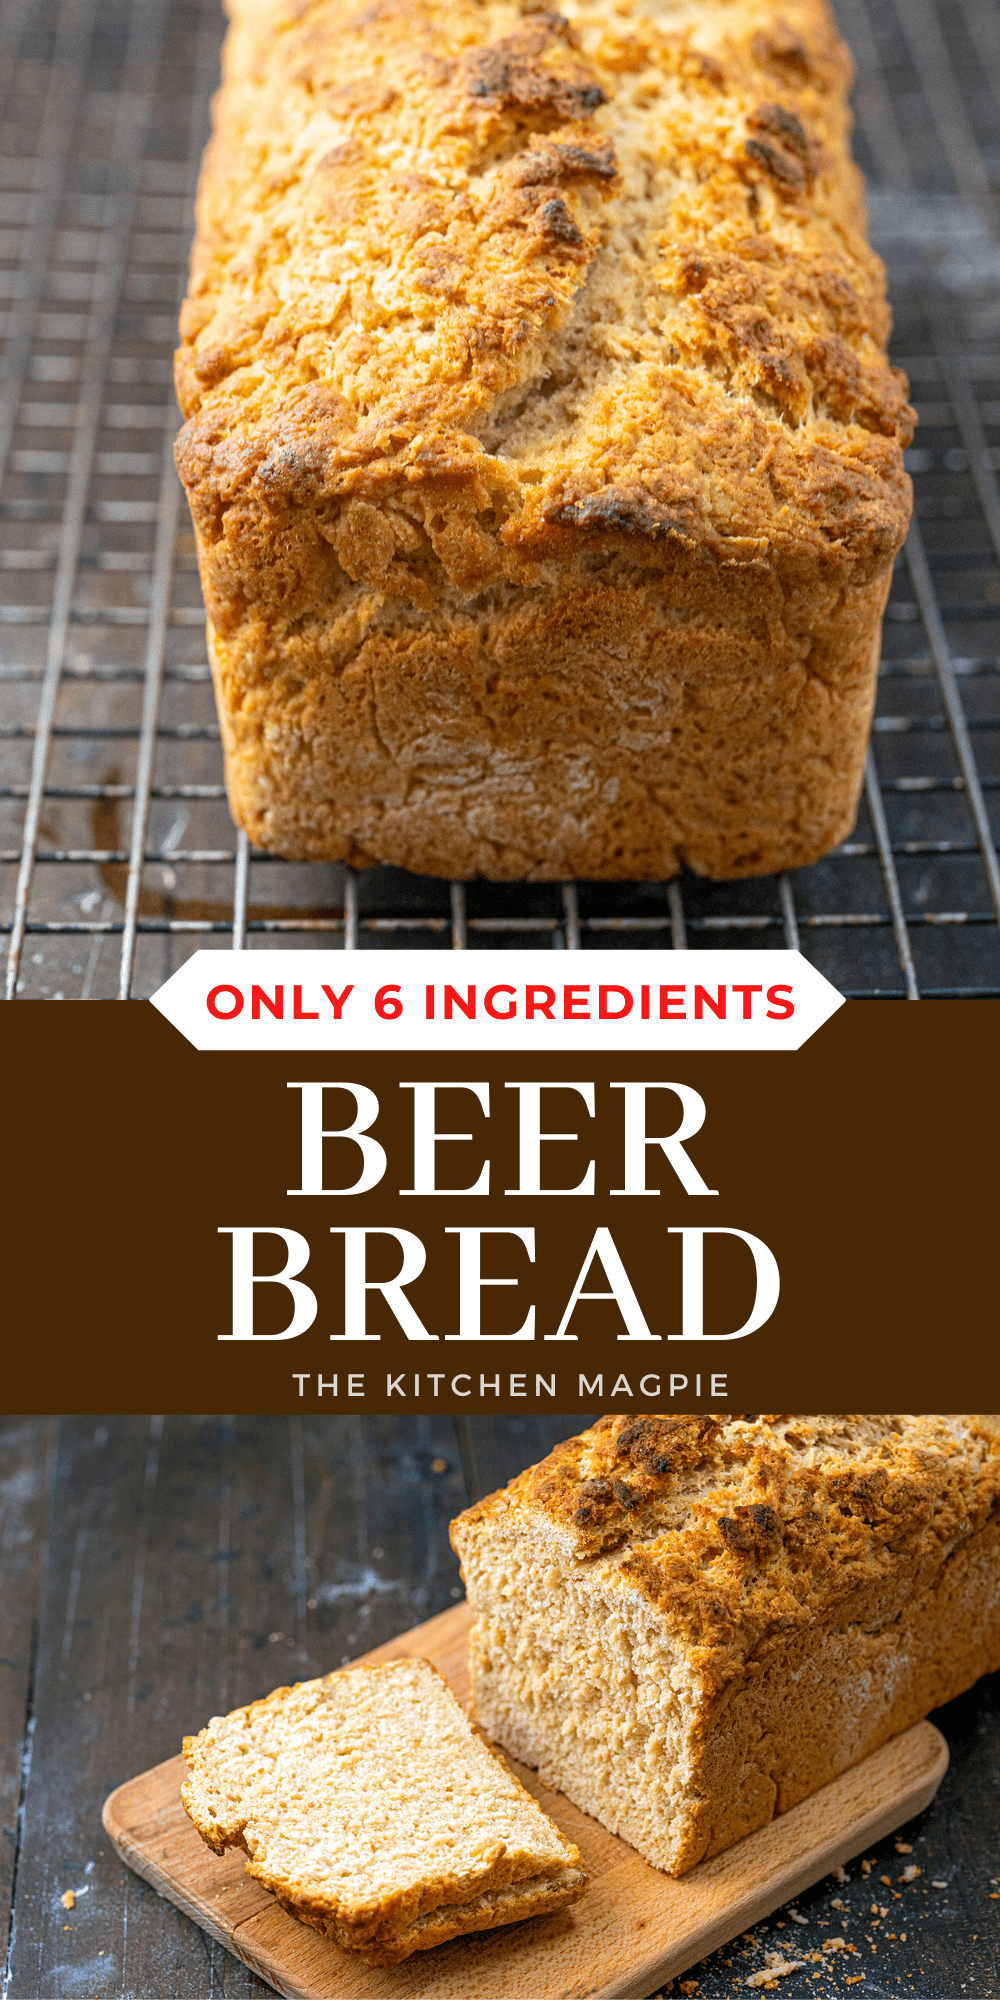 This simple beer bread uses the natural yeast in beer to make a delicious warm, dense bread that can be slathered in butter and enjoyed as the perfect side for soups and more!